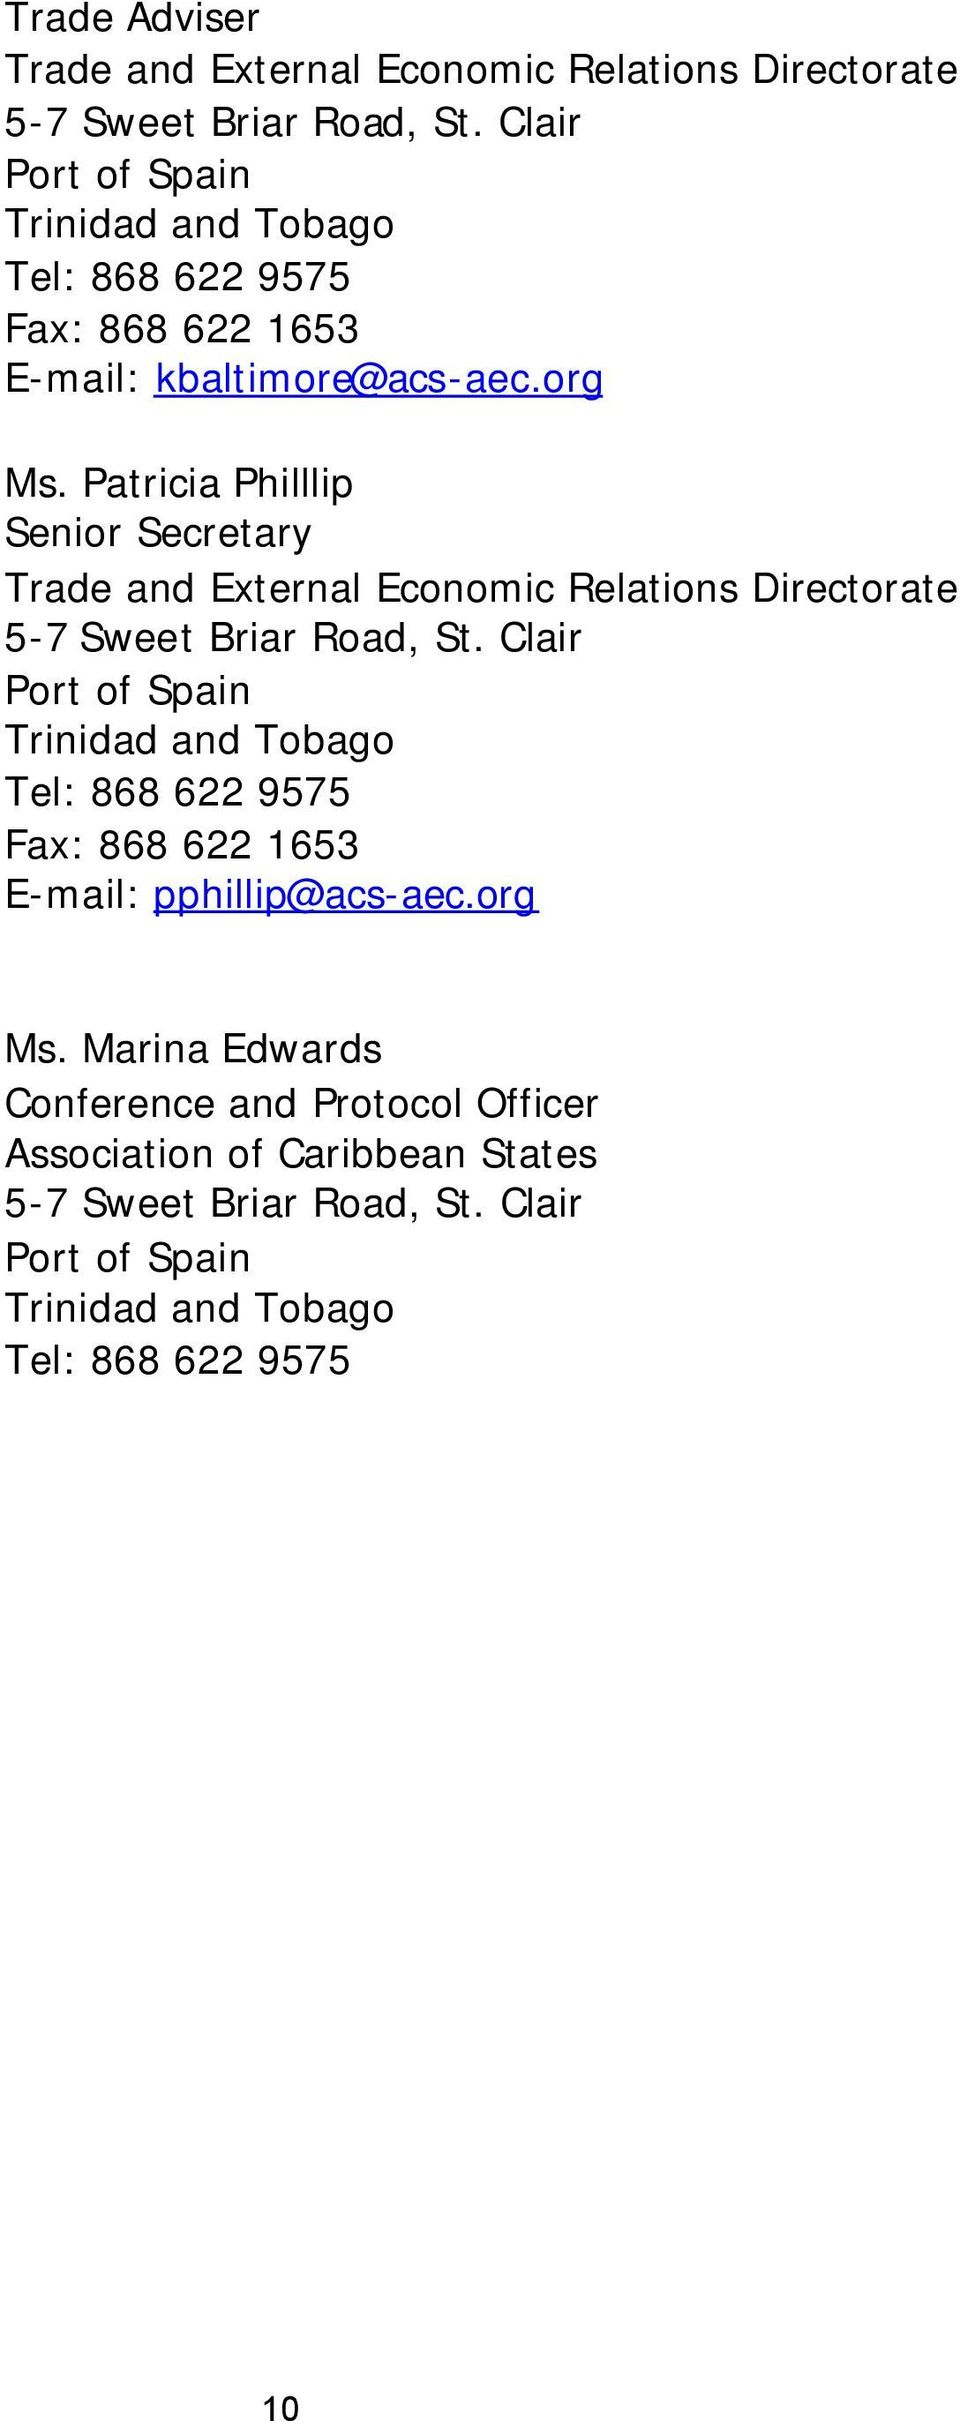 Patricia Philllip Senior Secretary Trade and External Economic Relations Directorate 5-7 Sweet Briar Road, St.